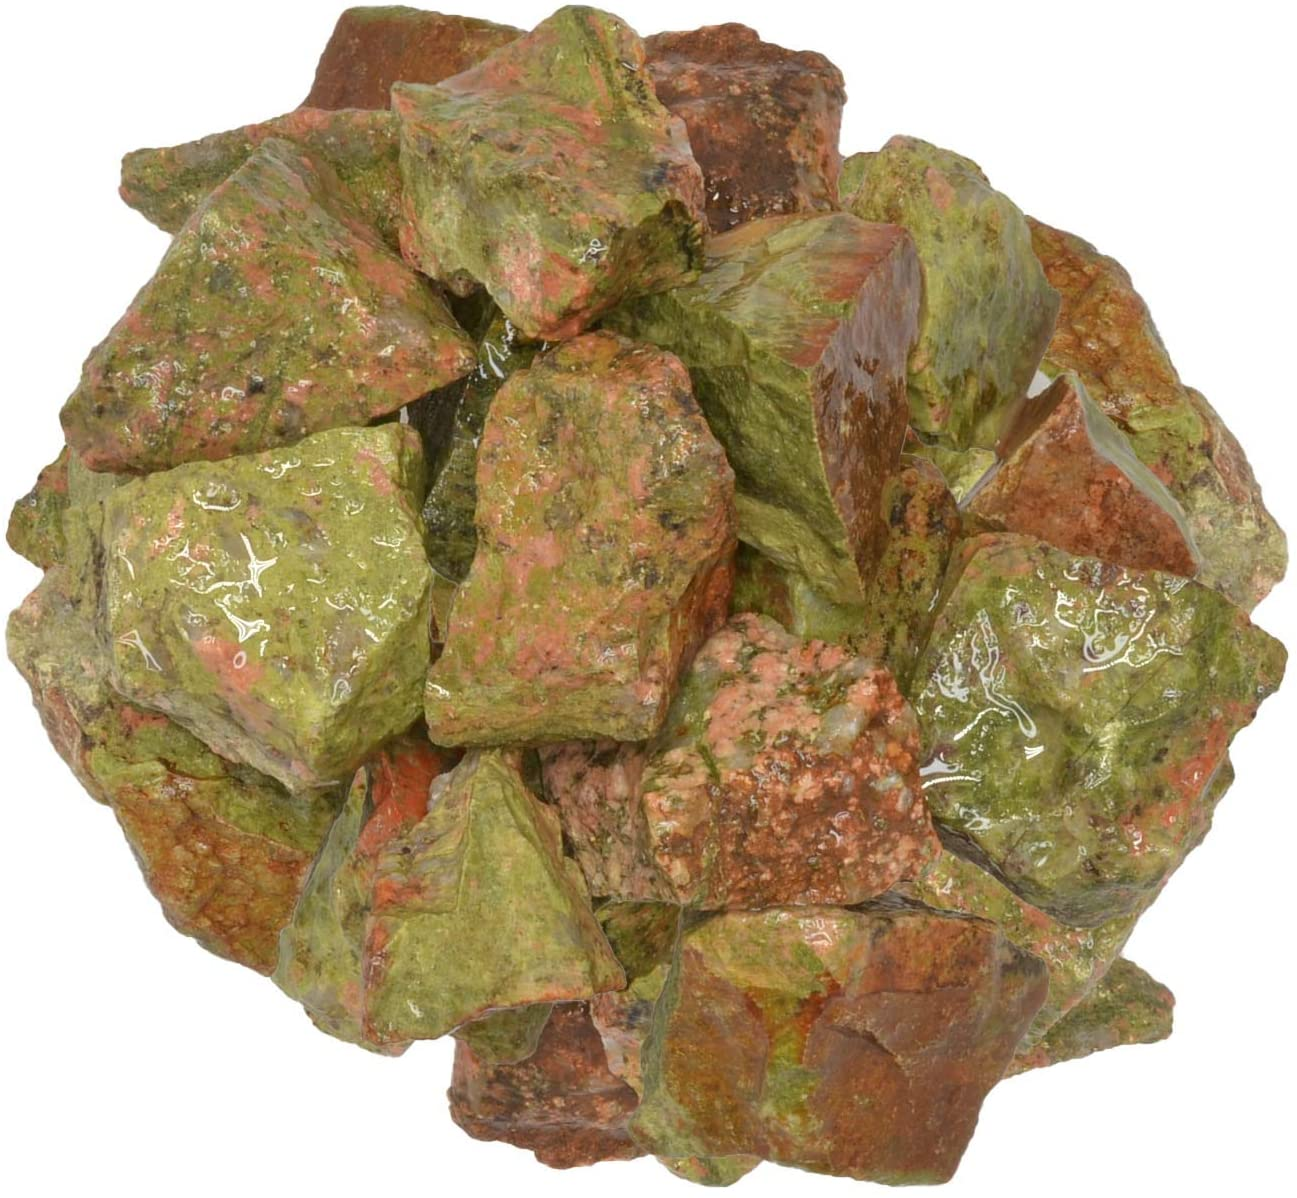 Digging Dolls: 1/2 lb of Unakite Rough Stones from India - Raw Rocks Perfect for Tumbling, Lapidary Polishing, Reiki, Crystal Healing and Crafts!